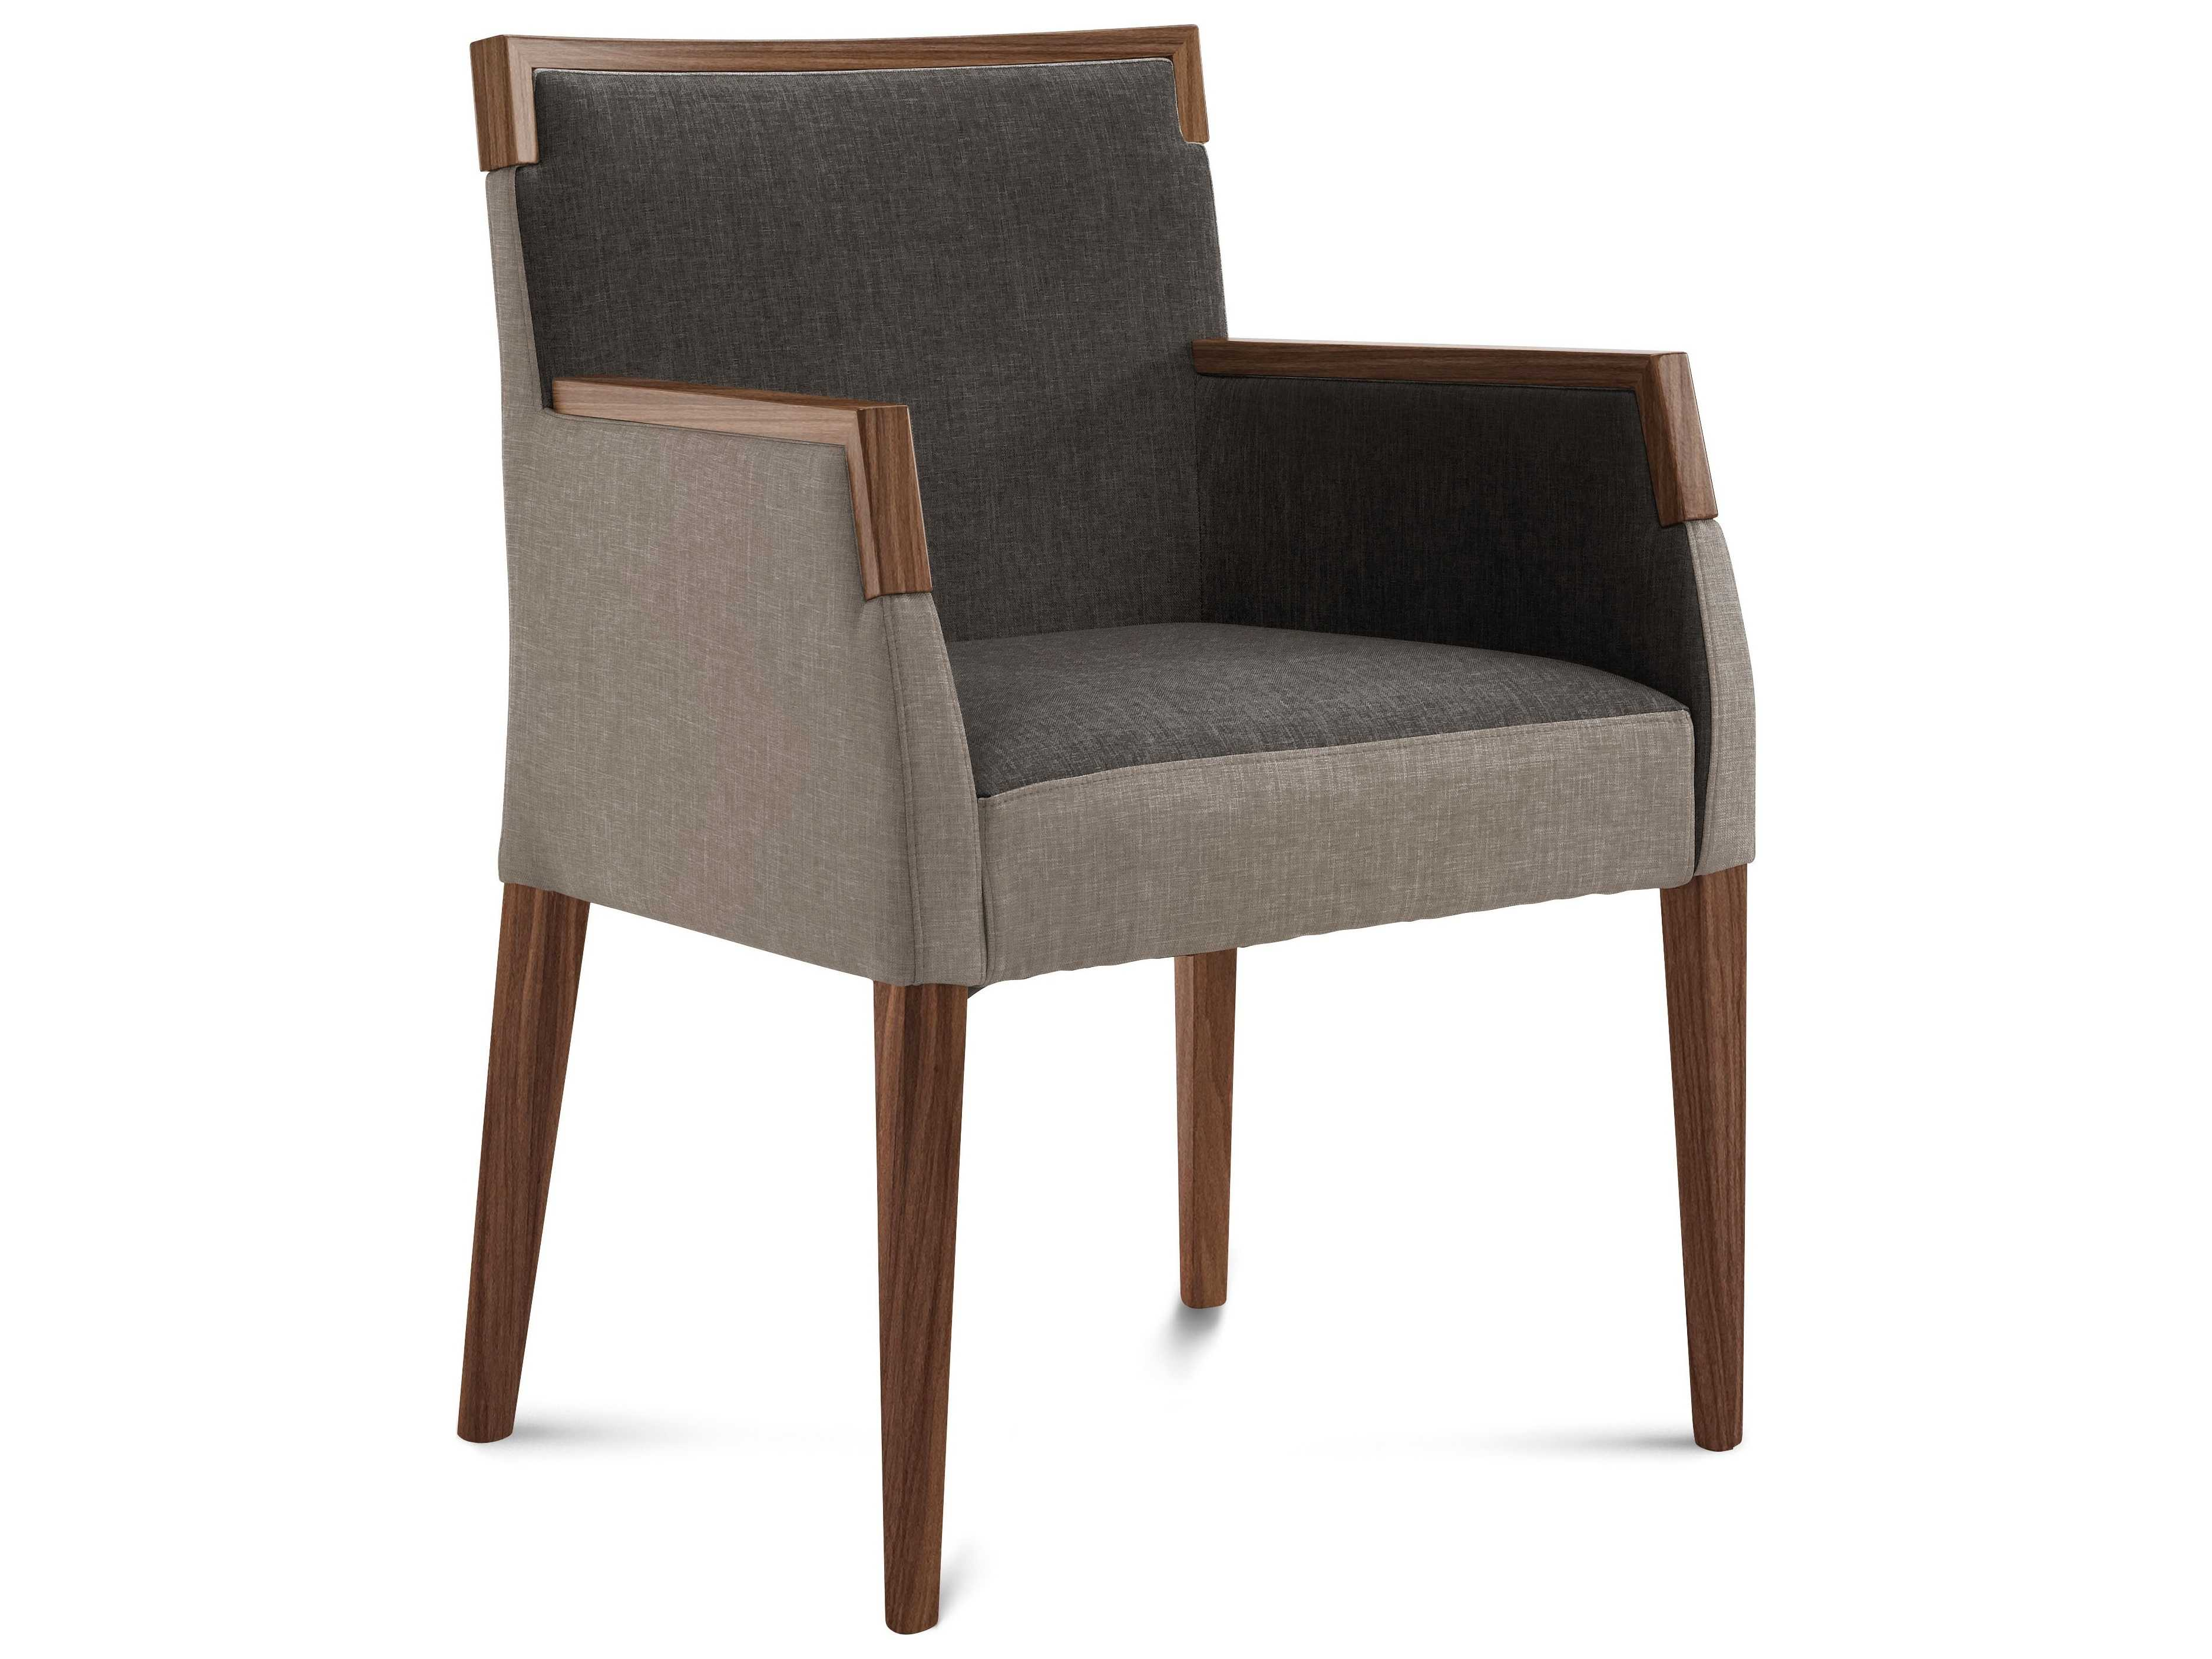 Domitalia ariel dining armchair domarielpi for Ariel chaise lounge